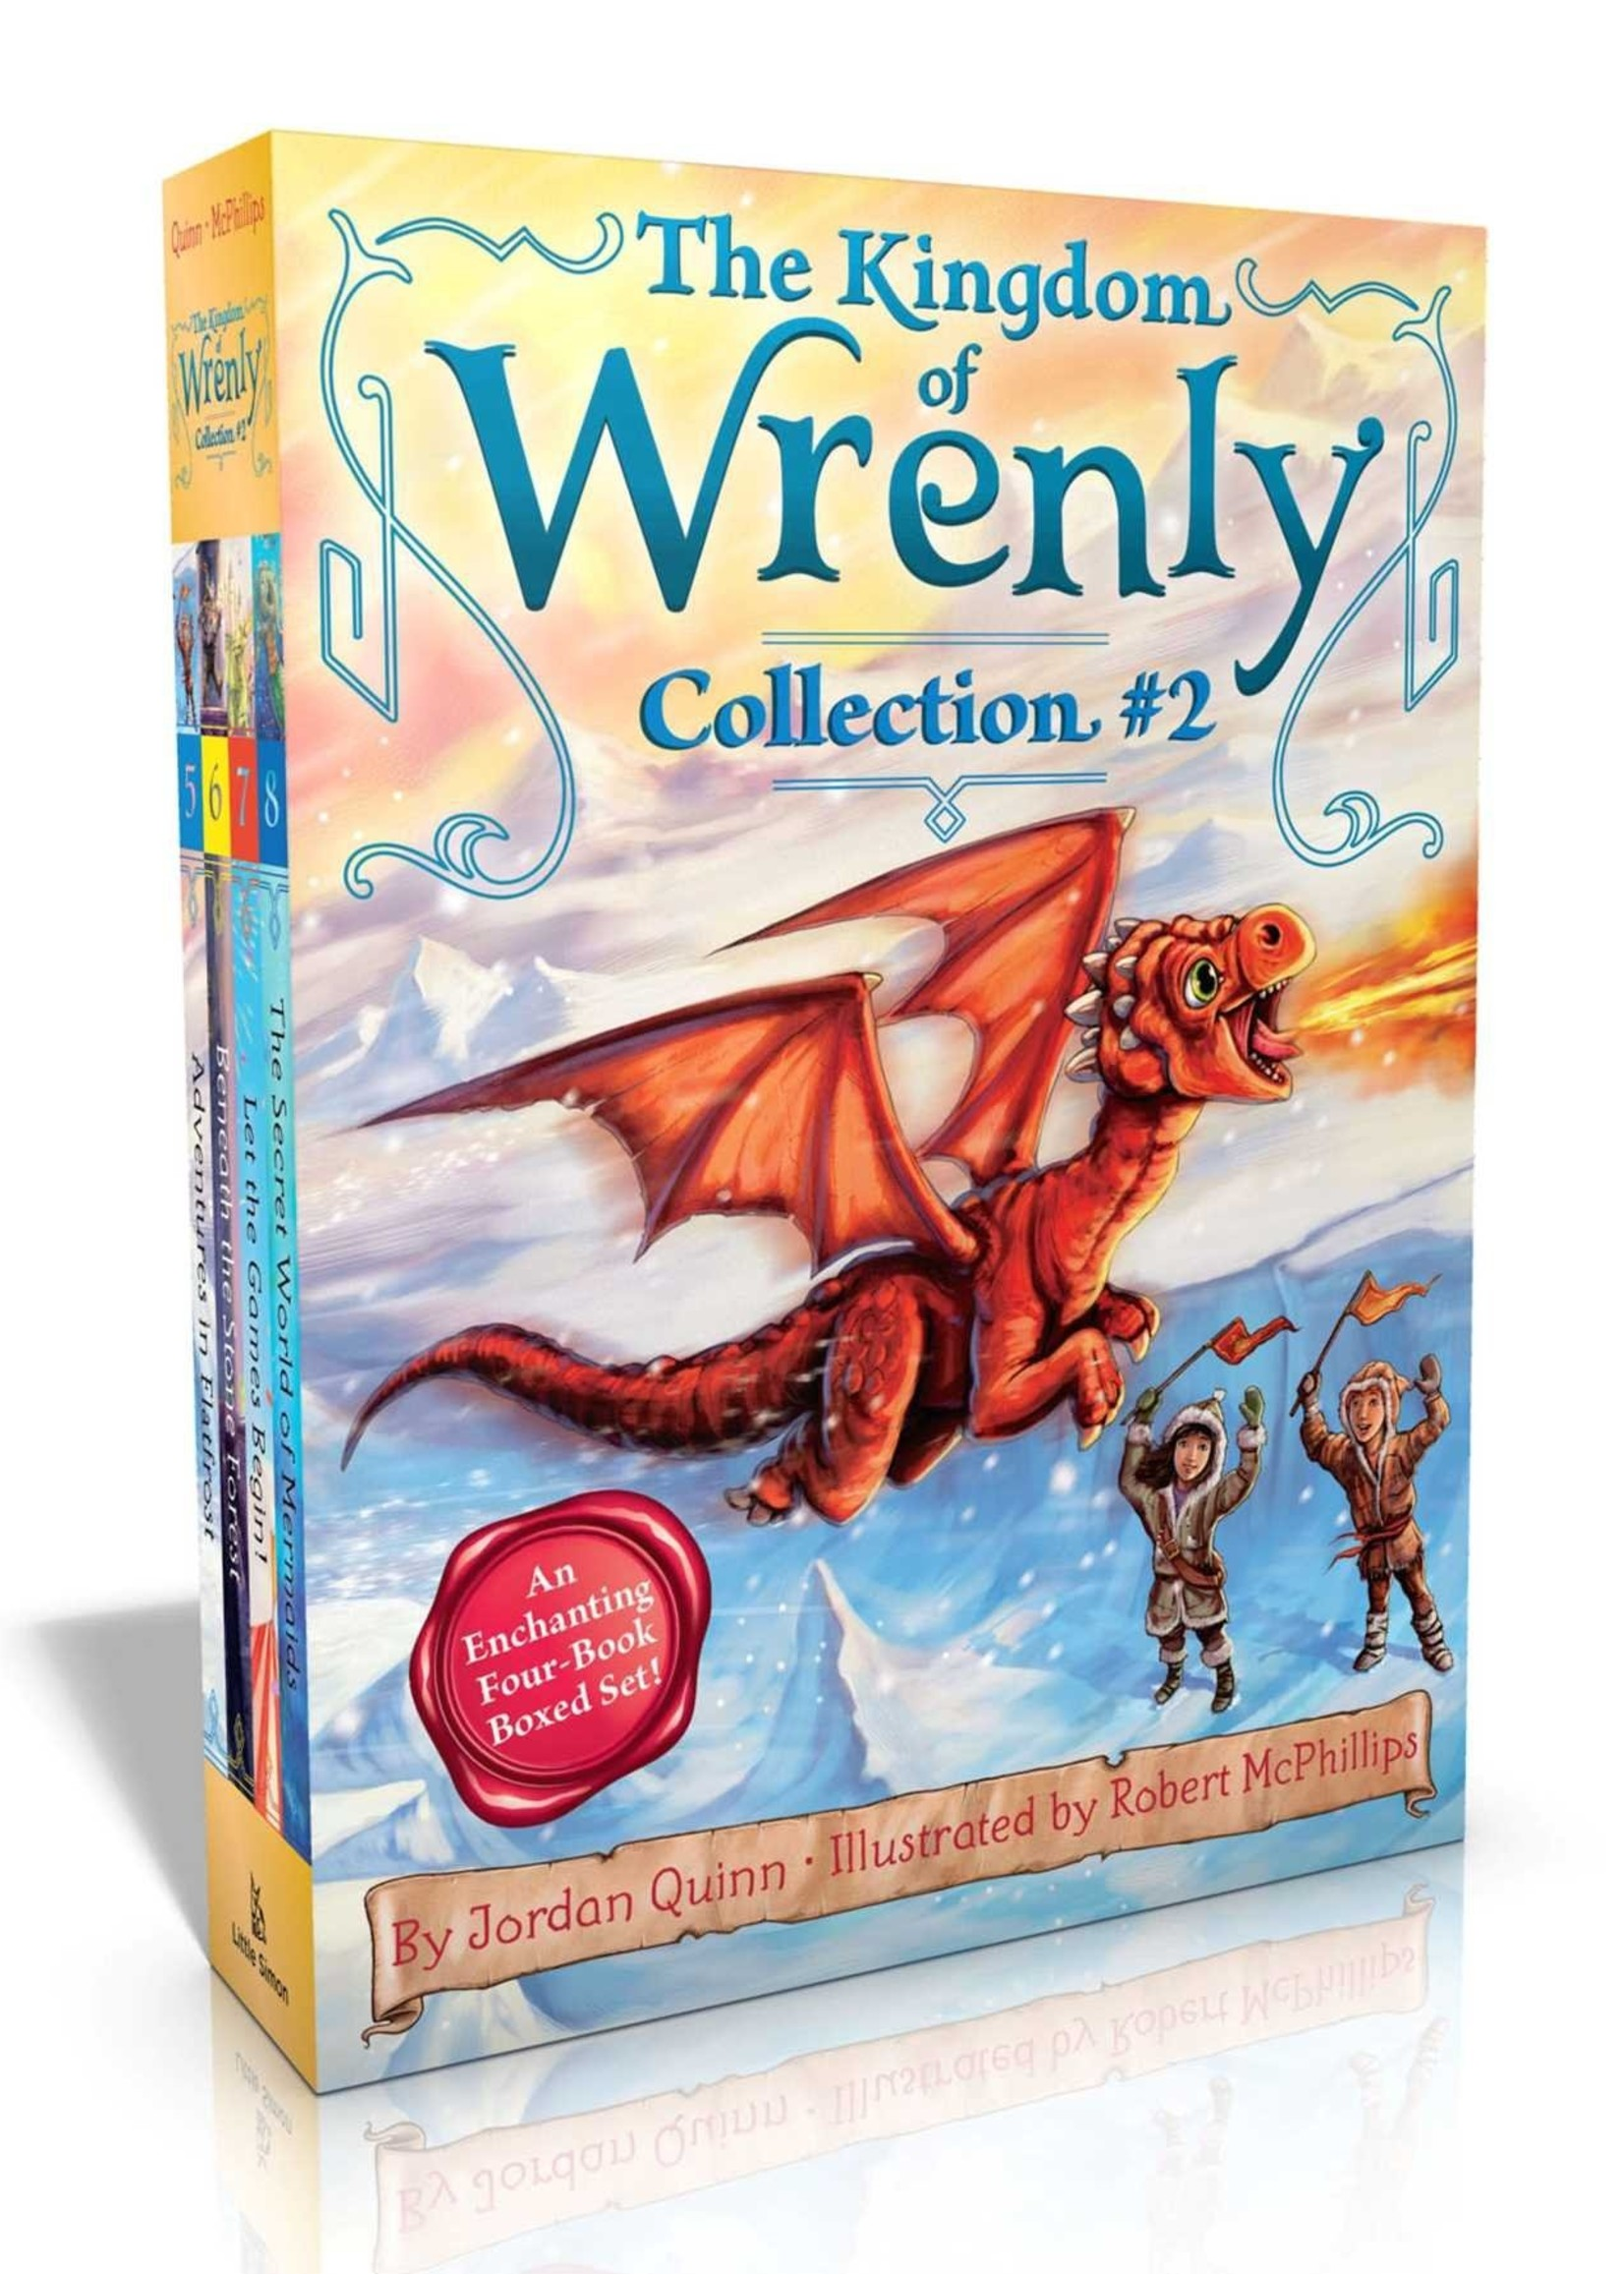 Kingdom of Wrenly Collection #02, Books 5-8, Paperback Set - Box